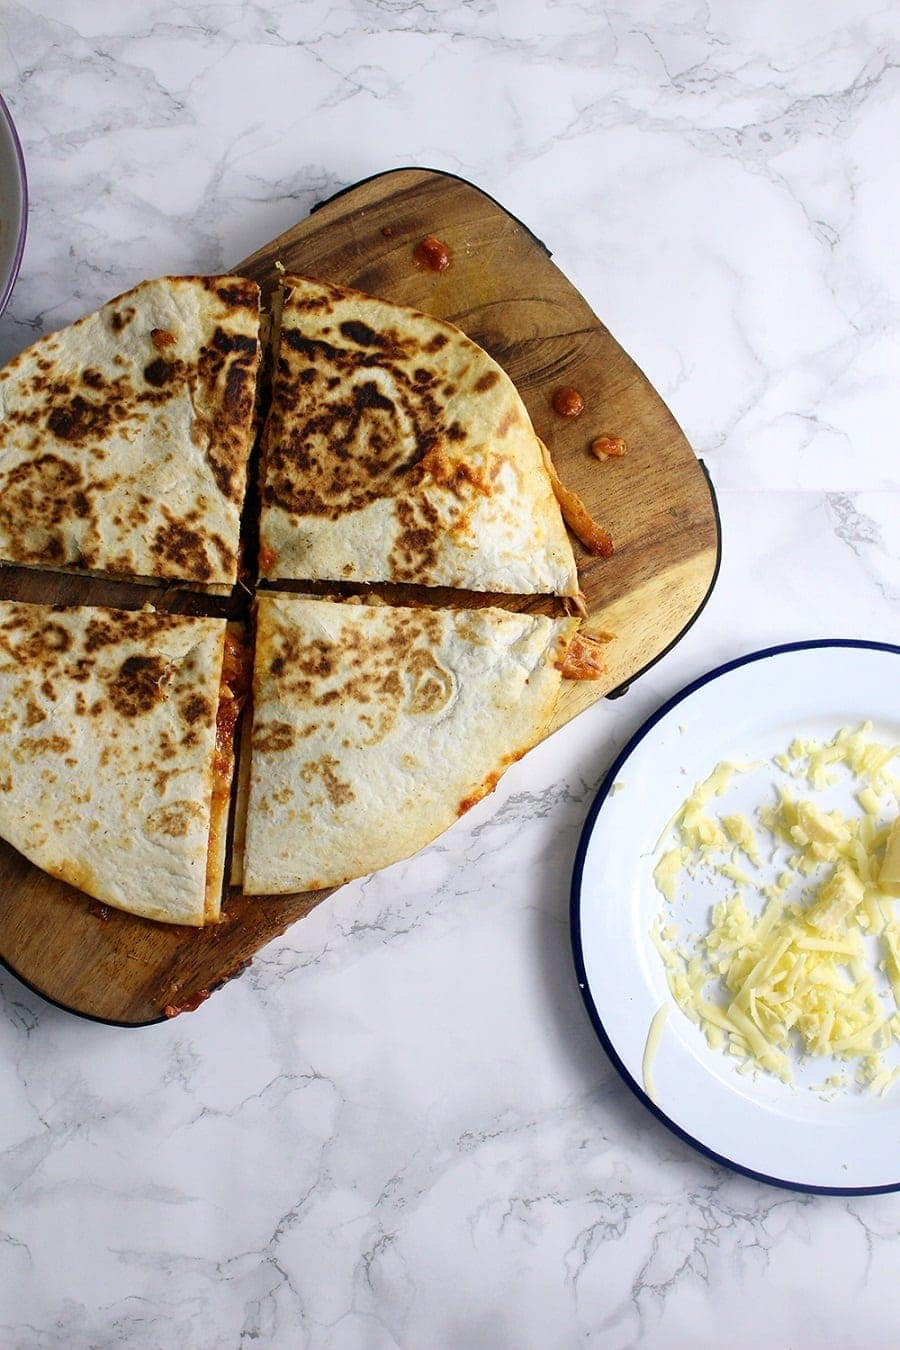 These slow cooker chipotle chicken quesadillas are the perfect weeknight dinner. At the end of the day just shred your chicken and fry up some quesadillas!